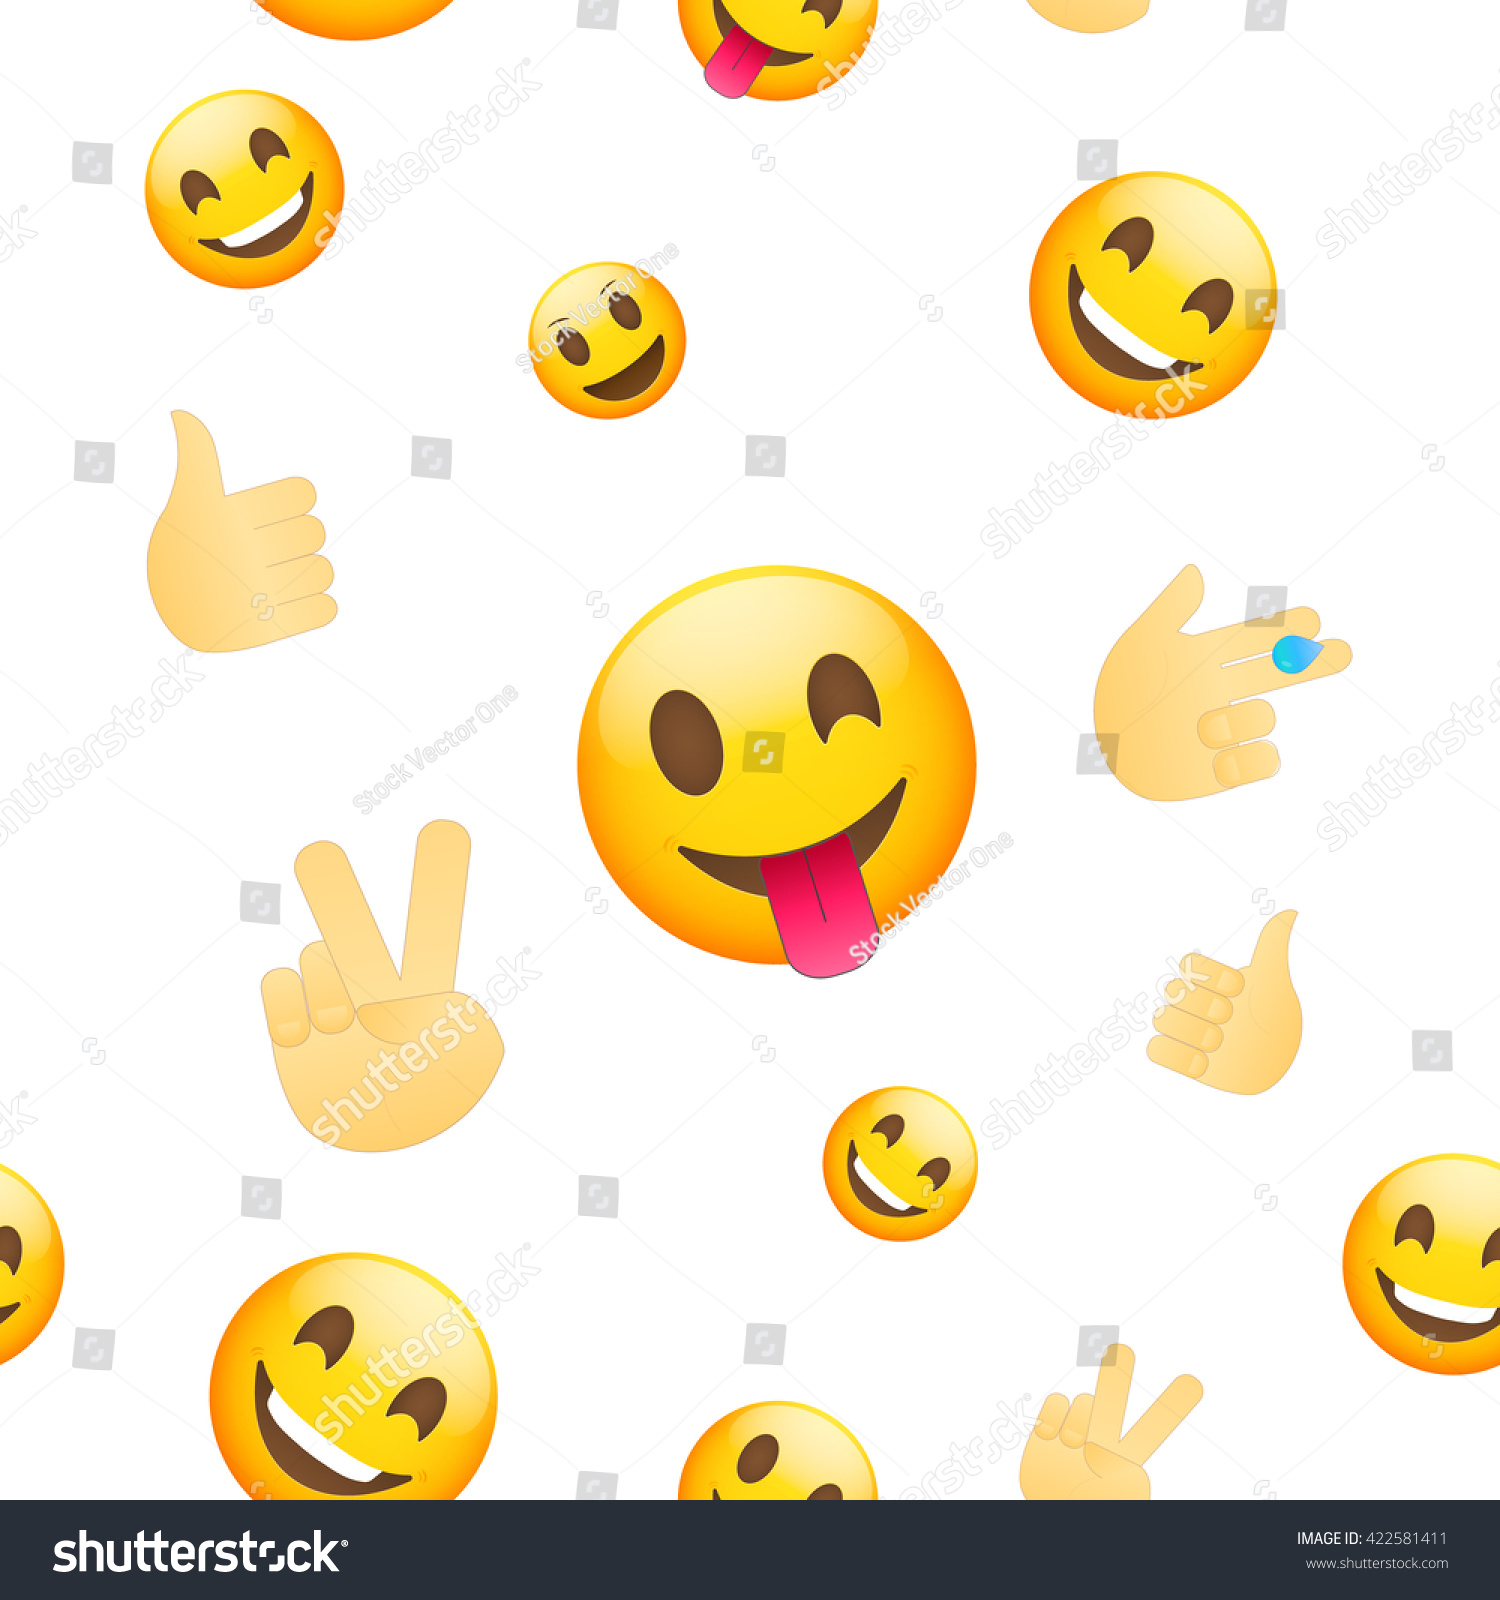 Simple Wallpaper Love Emoji - stock-vector-emoji-wallpaper-emoticons-seamless-pattern-emoji-faces-and-emoji-hand-icons-on-white-background-422581411  HD_662391.jpg